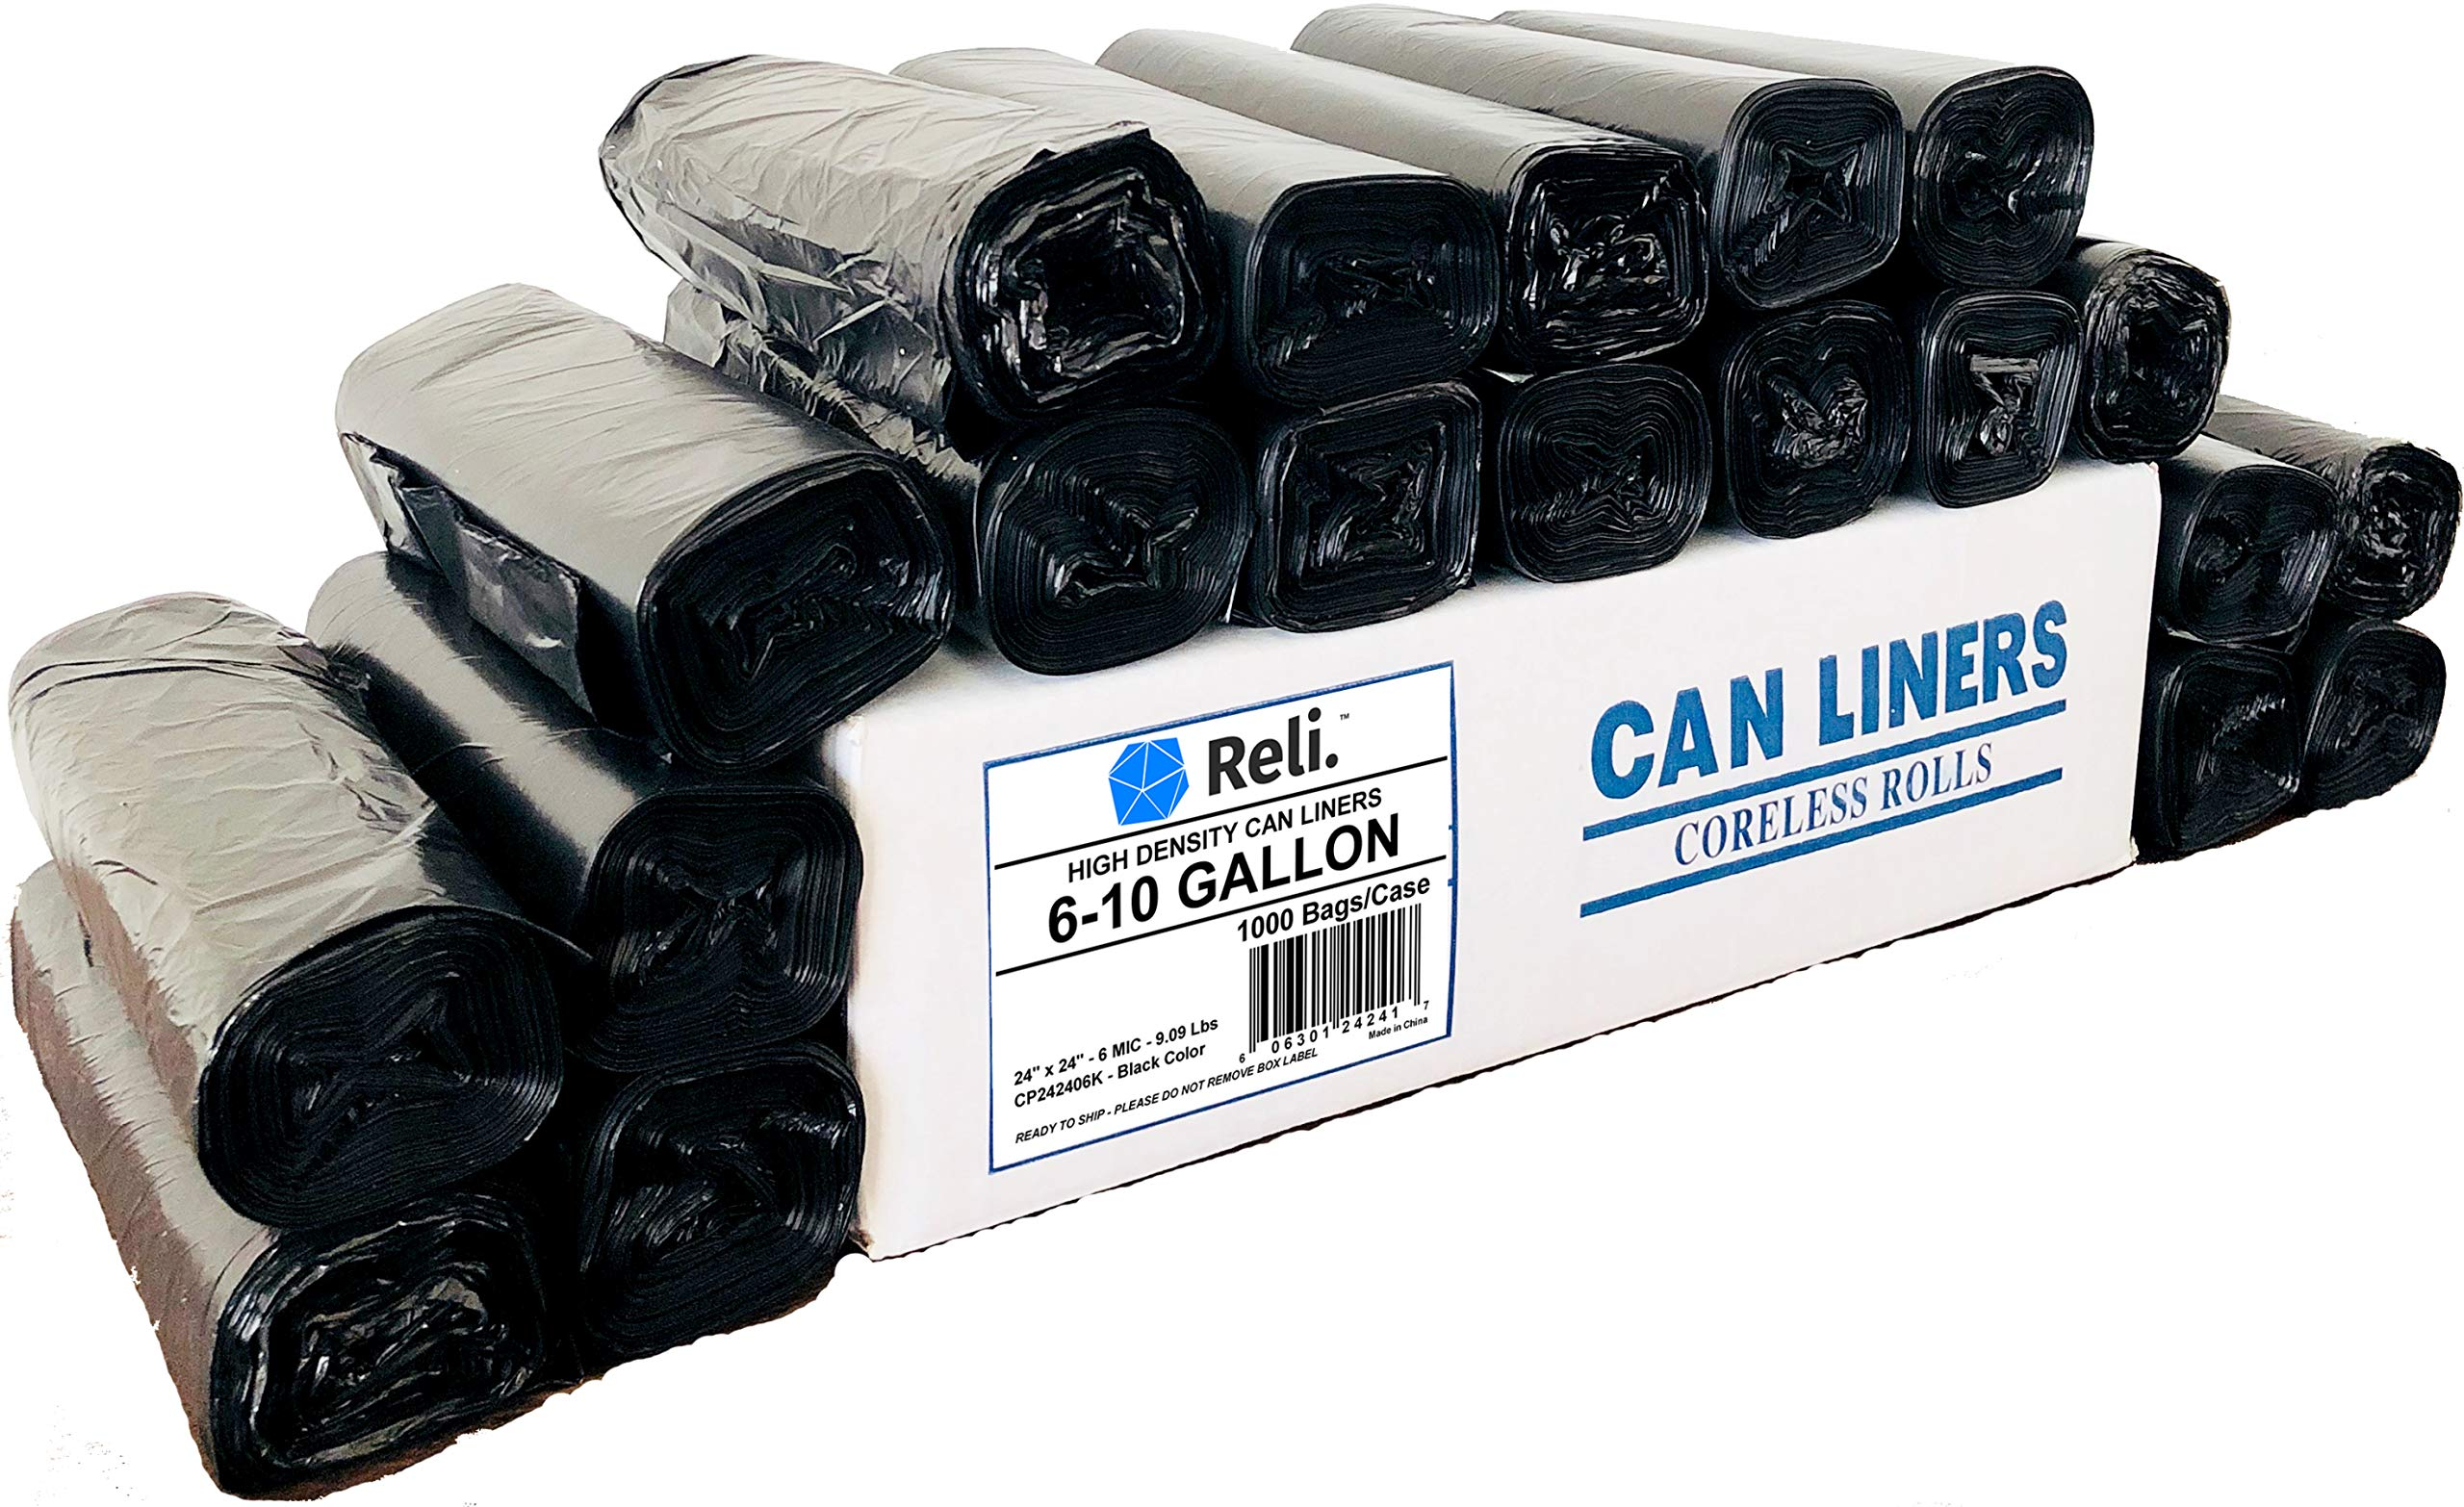 Reli. 6-10 Gallon Trash Bags, Black (1000 Count, Bulk) Black 10 Gallon Garbage Bags with 6 Gal, 7 Gallon, 8 Gallon Capacity - Black Trash Liners 10 Gallon in Bulk by Reli.